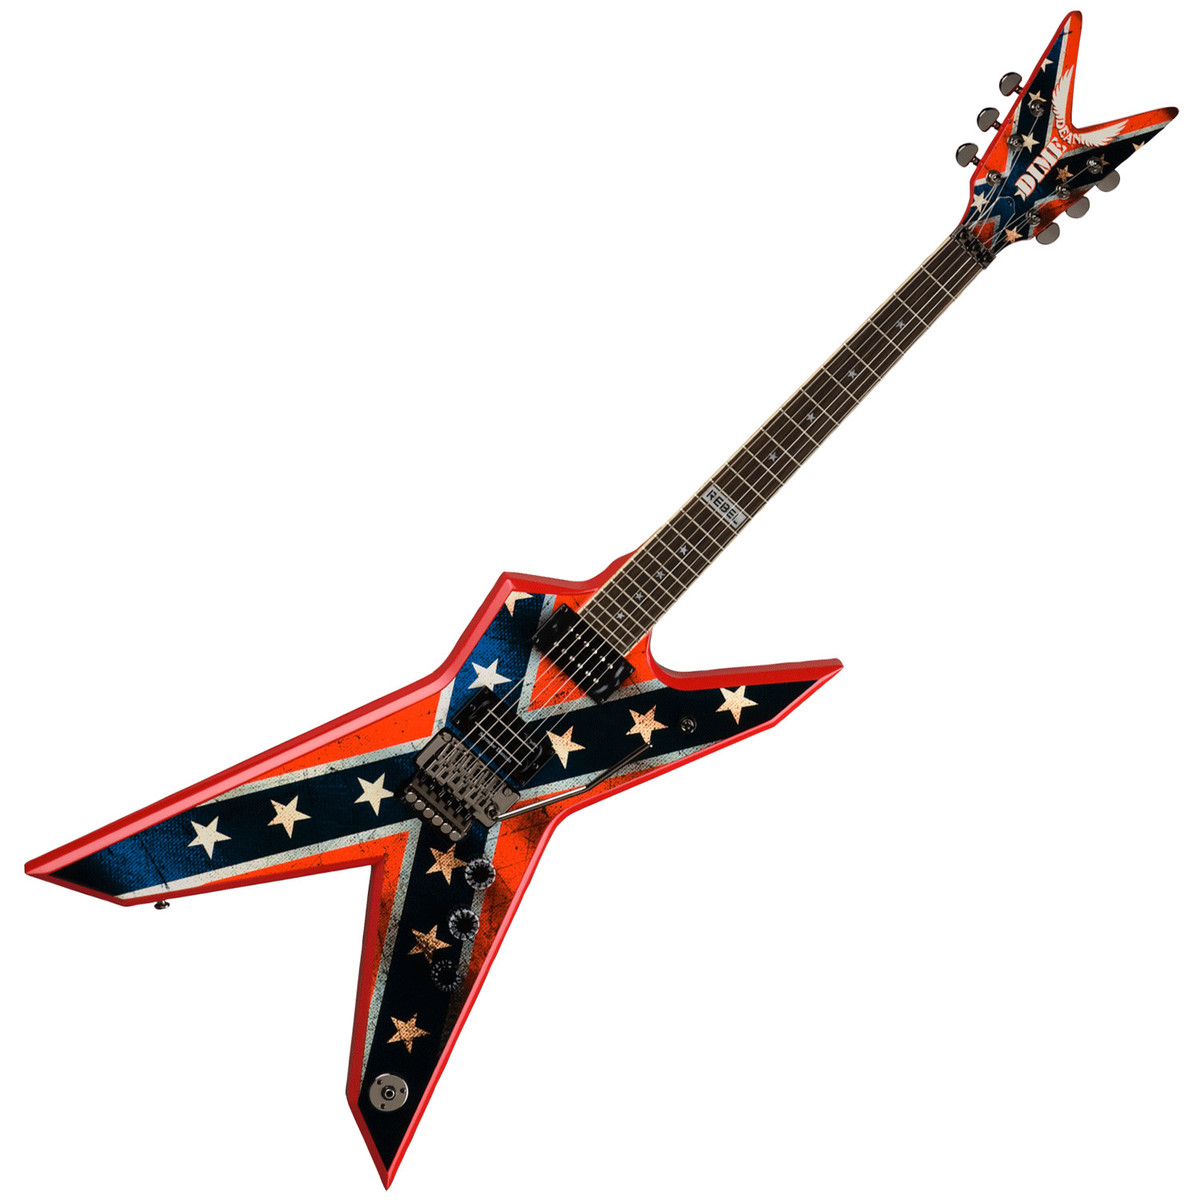 disc dean dimebag dixie rebel flag graphic at gear4music. Black Bedroom Furniture Sets. Home Design Ideas